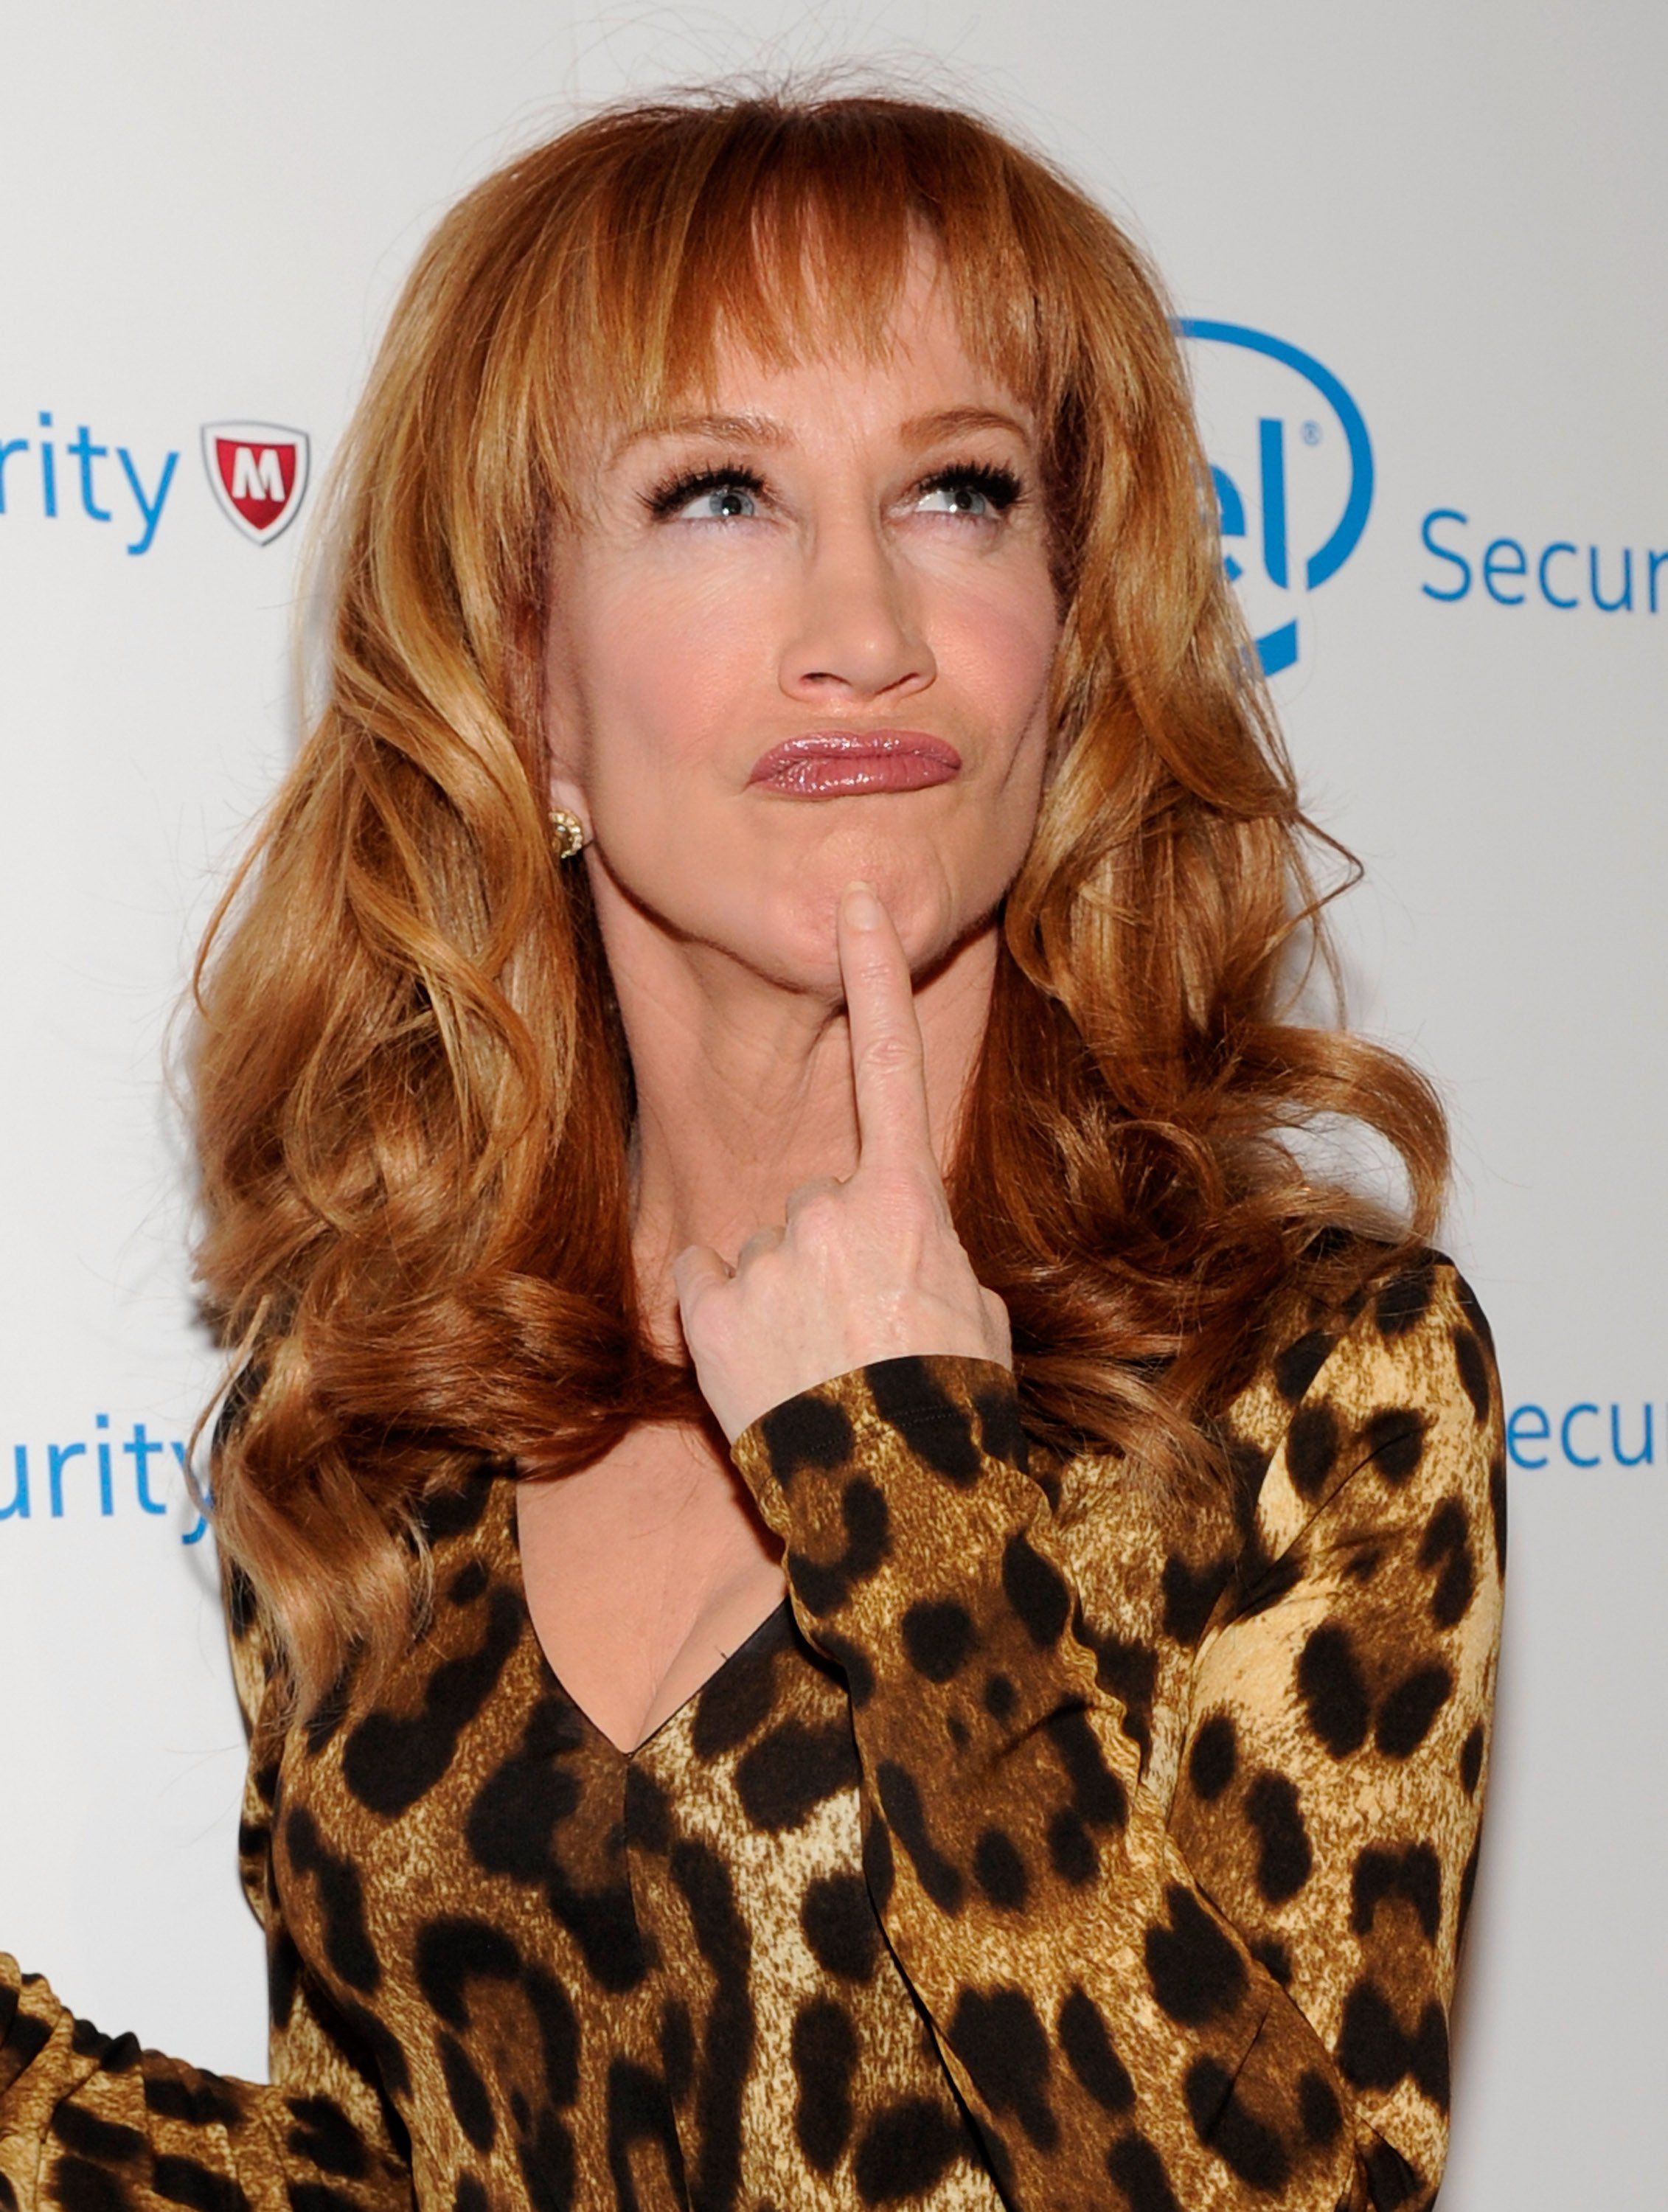 Kathy Griffin attends the McAfee's Digital Selves Event in Las Vegas, Nevada on January 7, 2014 | Photo: Getty Images